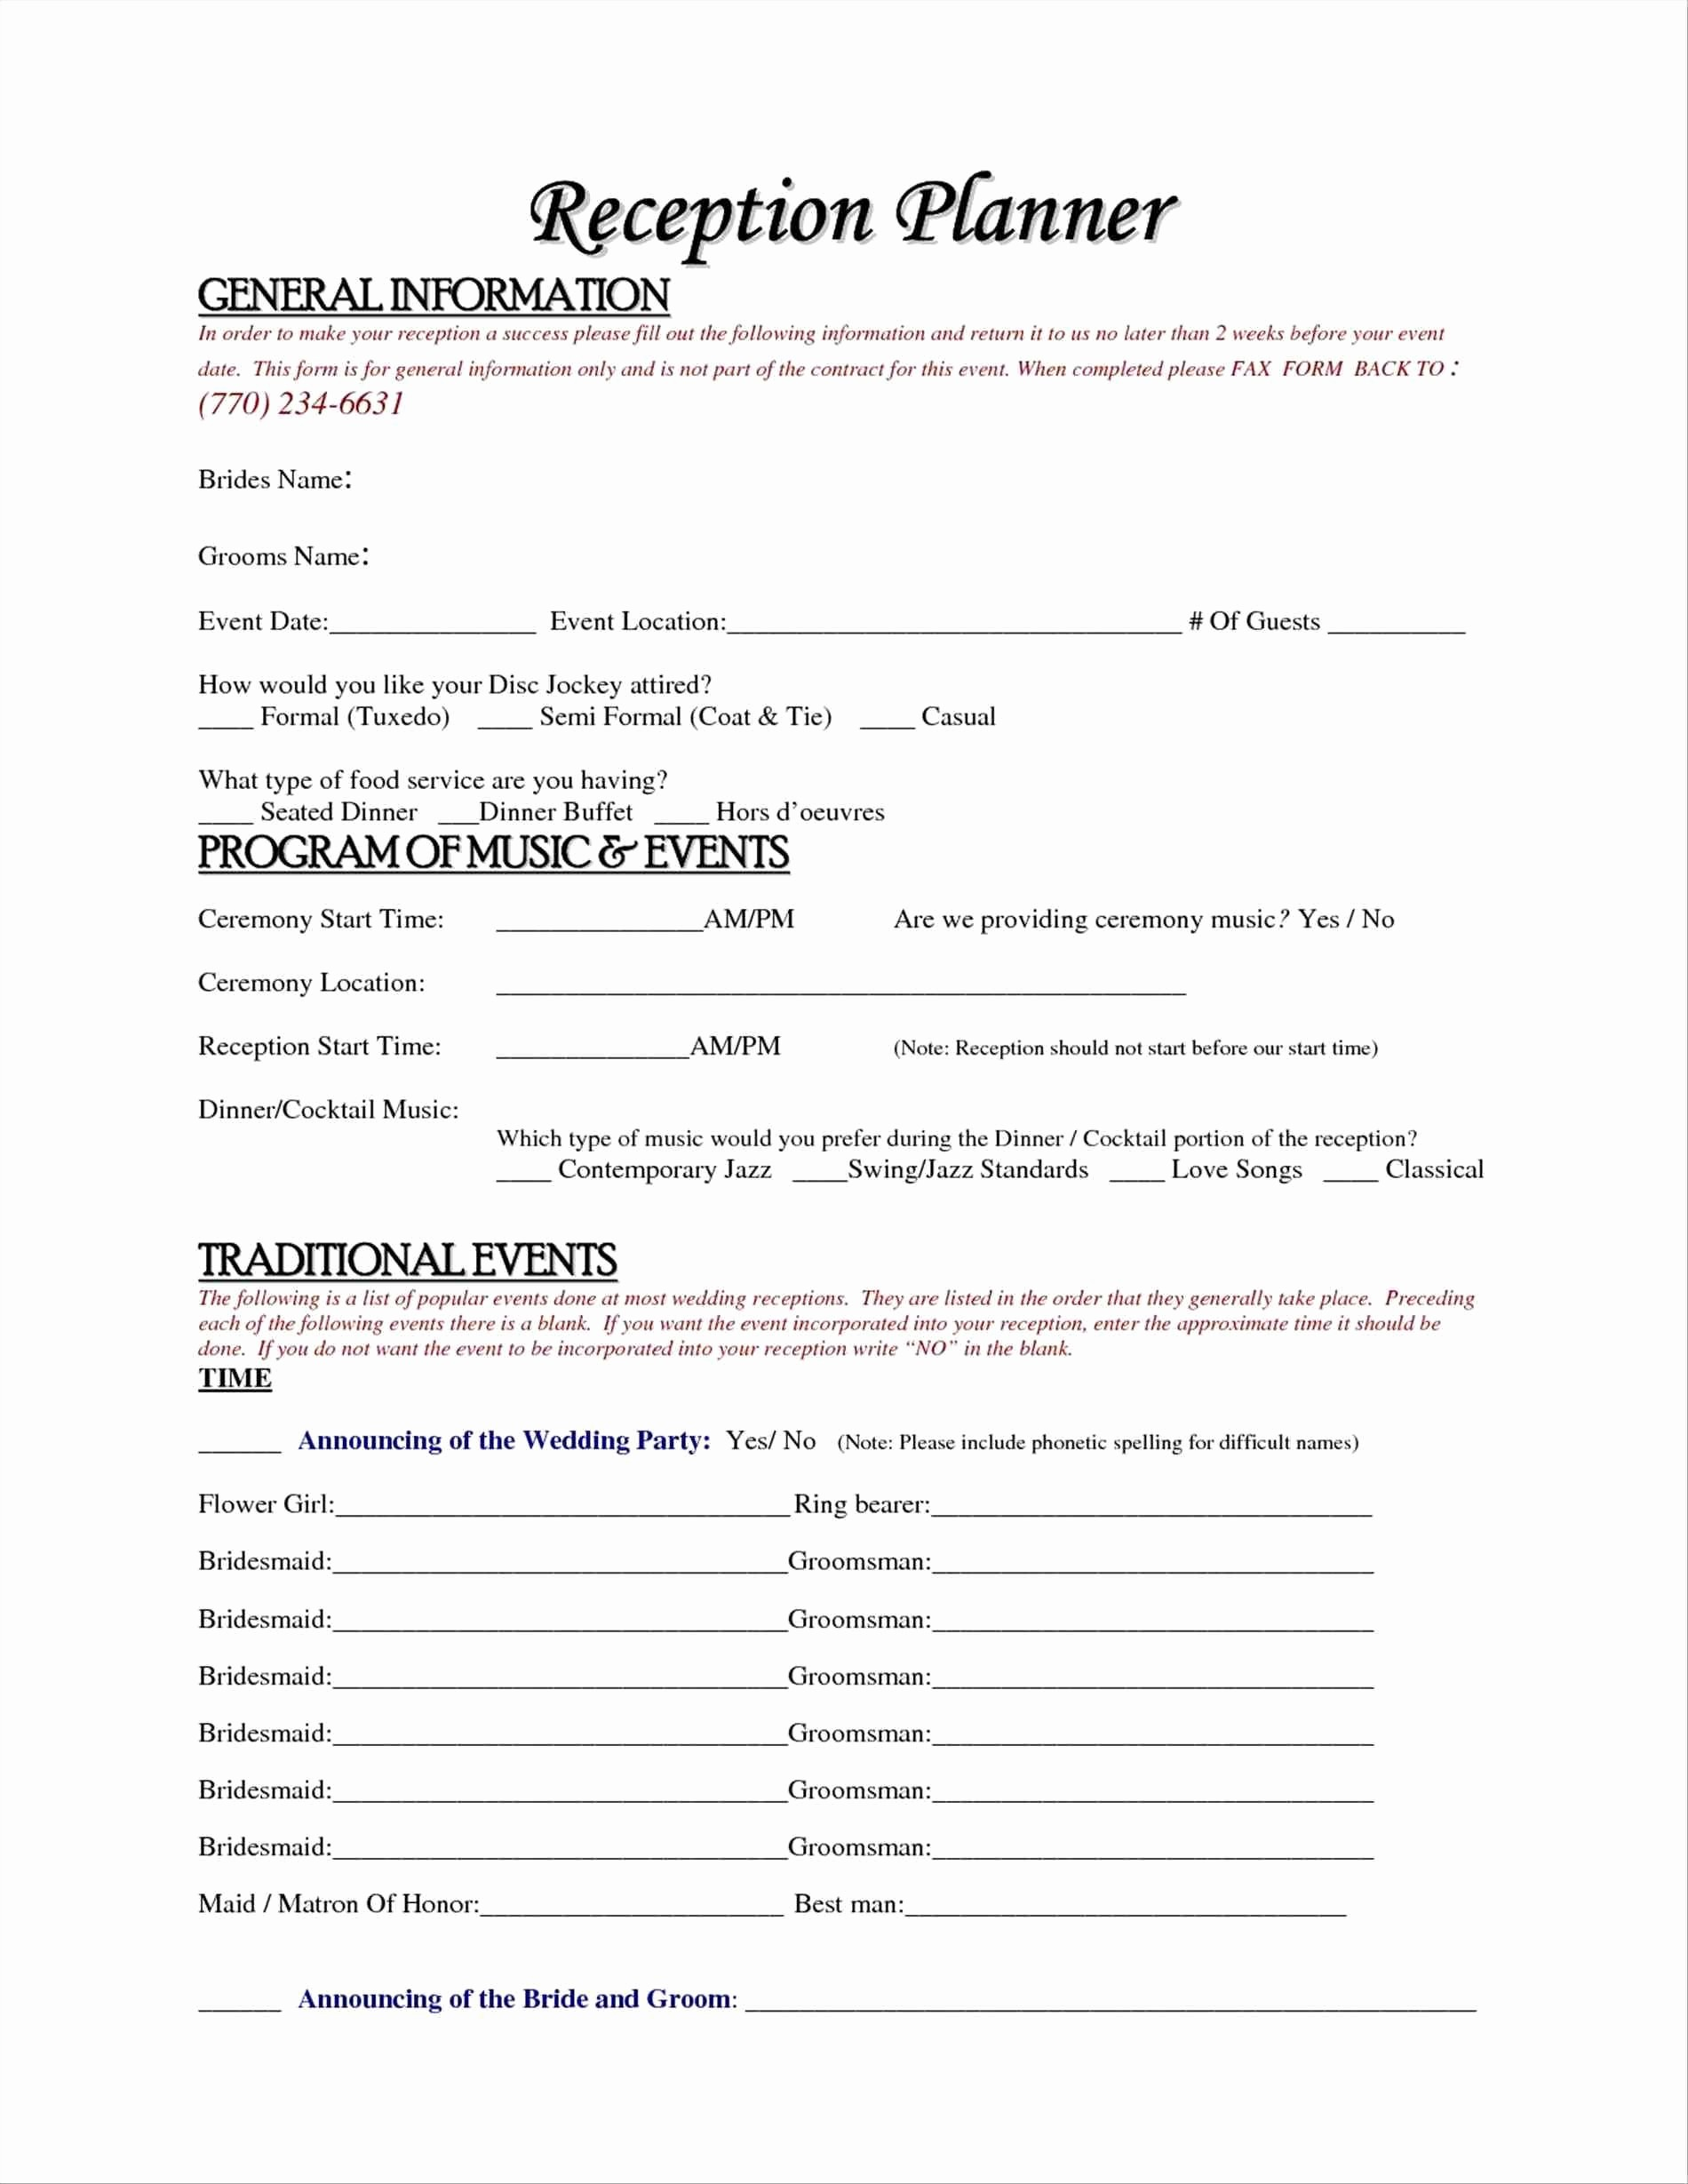 Wedding Ceremony song List Template Lovely Wedding Ceremony song List Template song List for Wedding